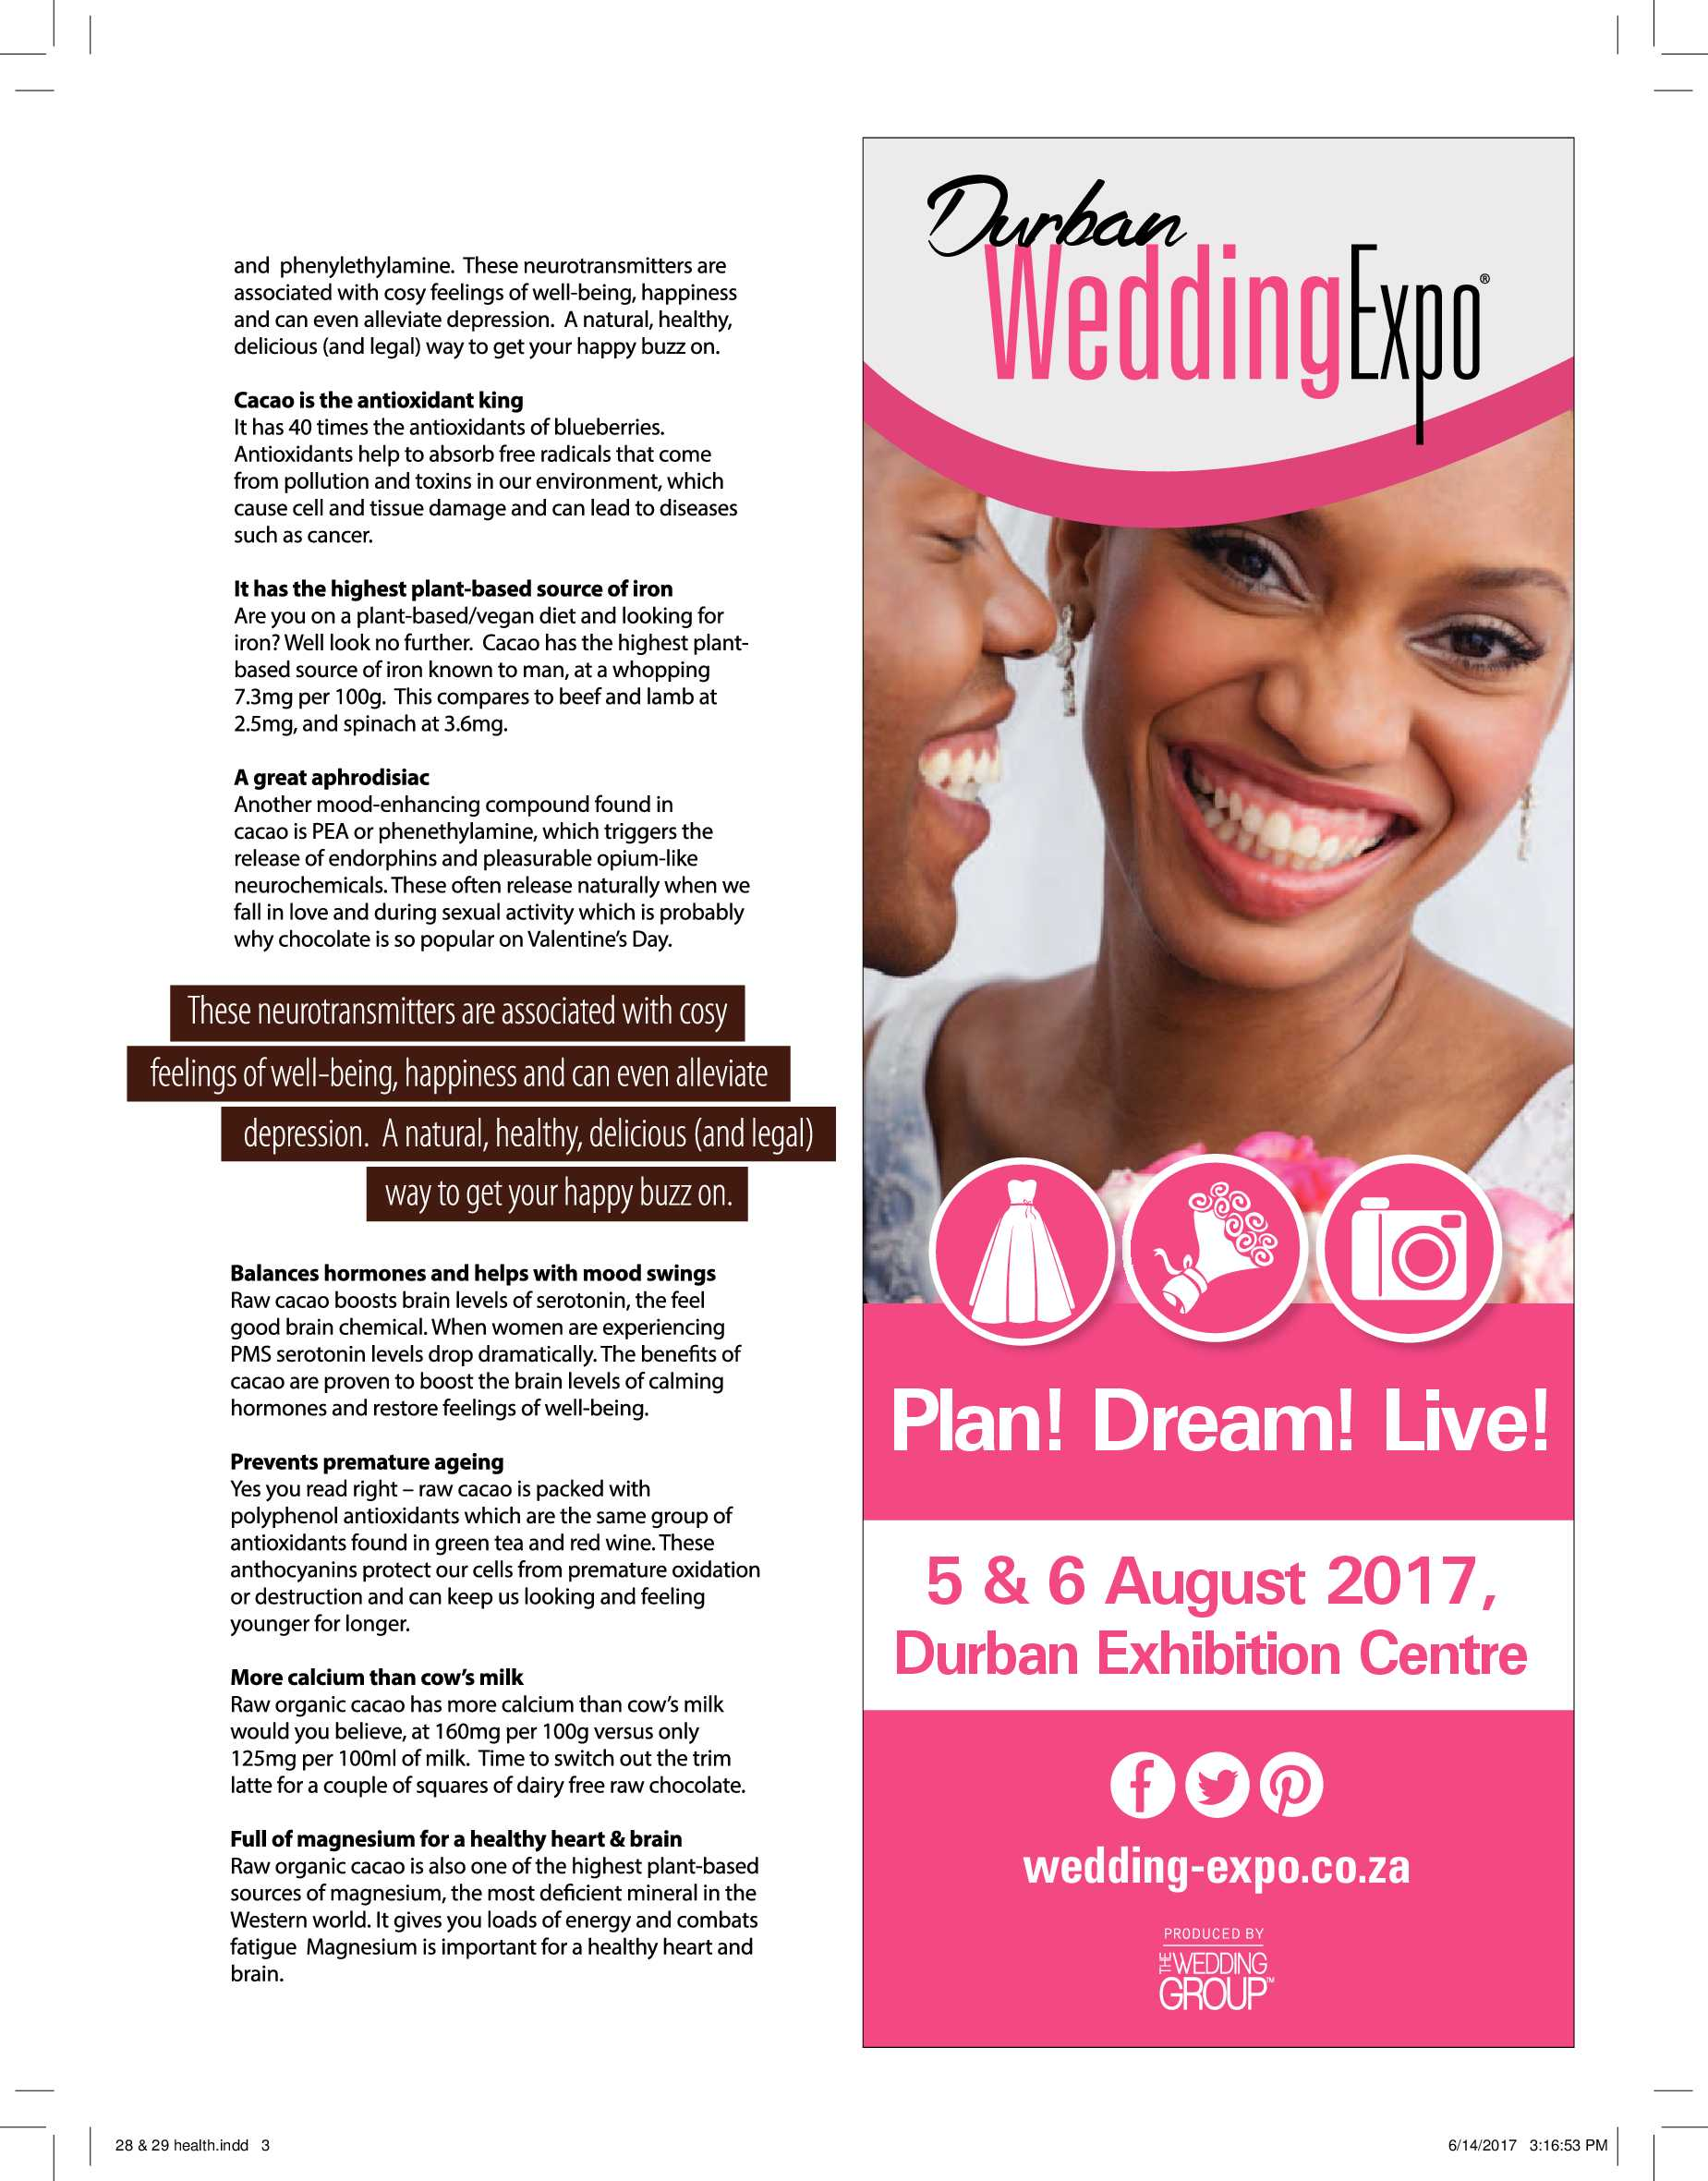 durban-get-magazine-july-2017-epapers-page-31